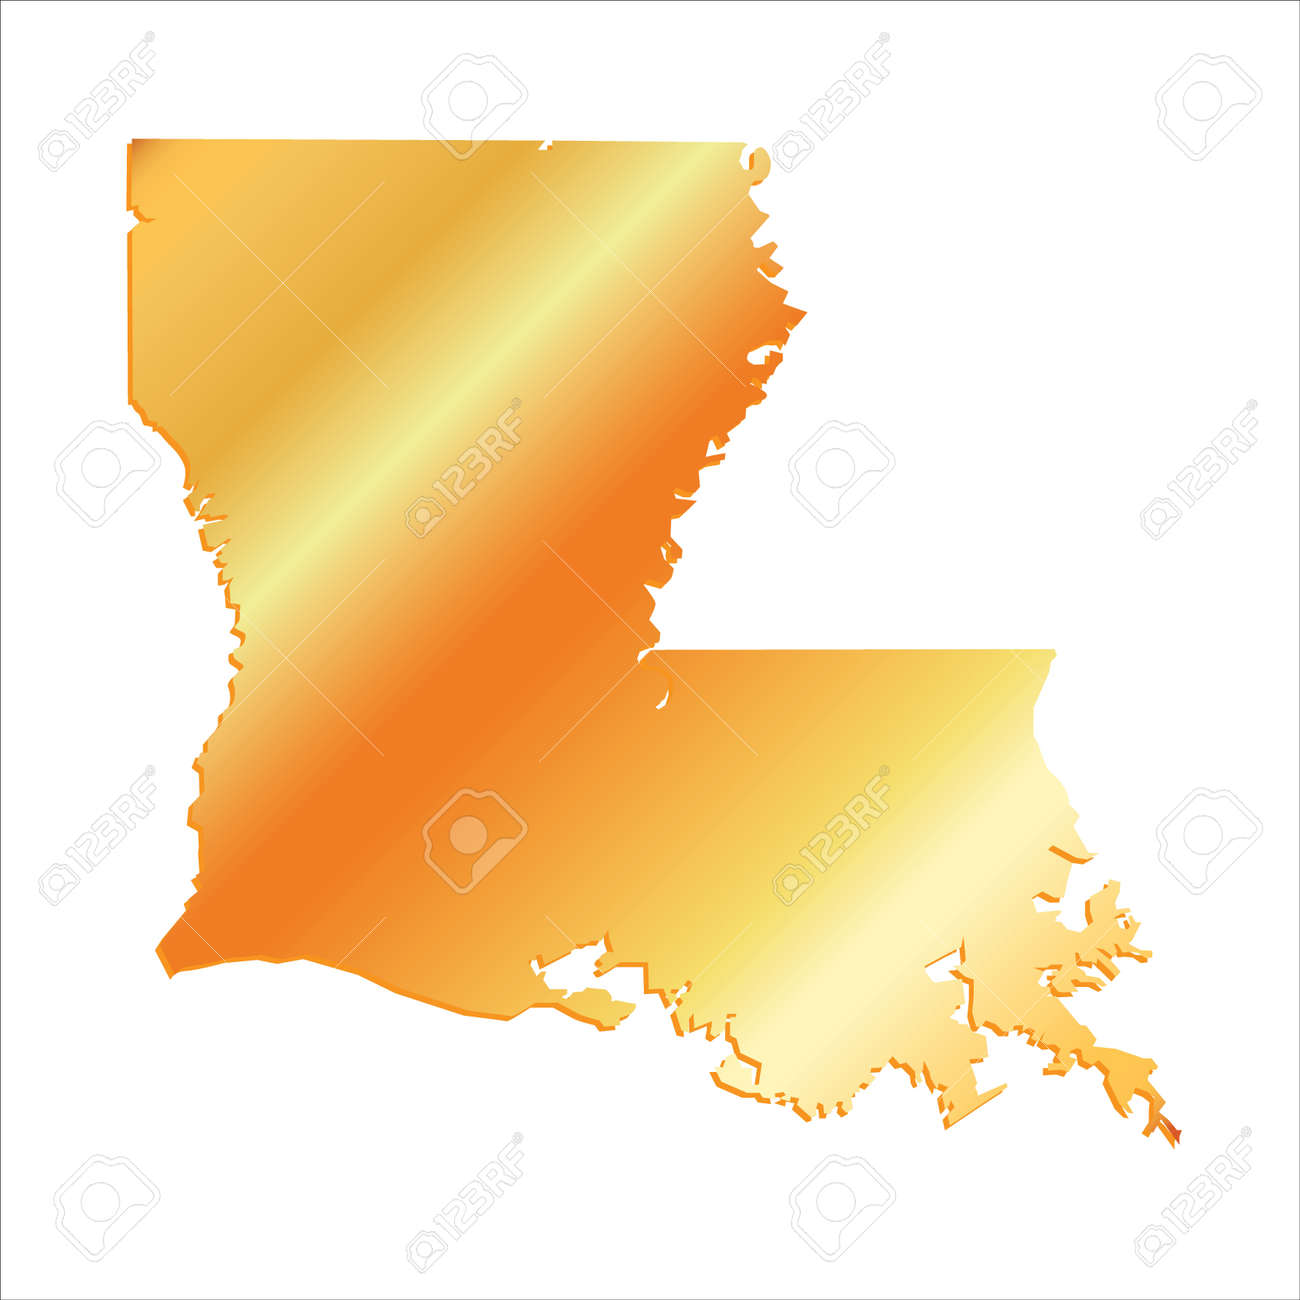 D Louisiana USA Gold Outline Map With Shadow Royalty Free - Louisiana in usa map